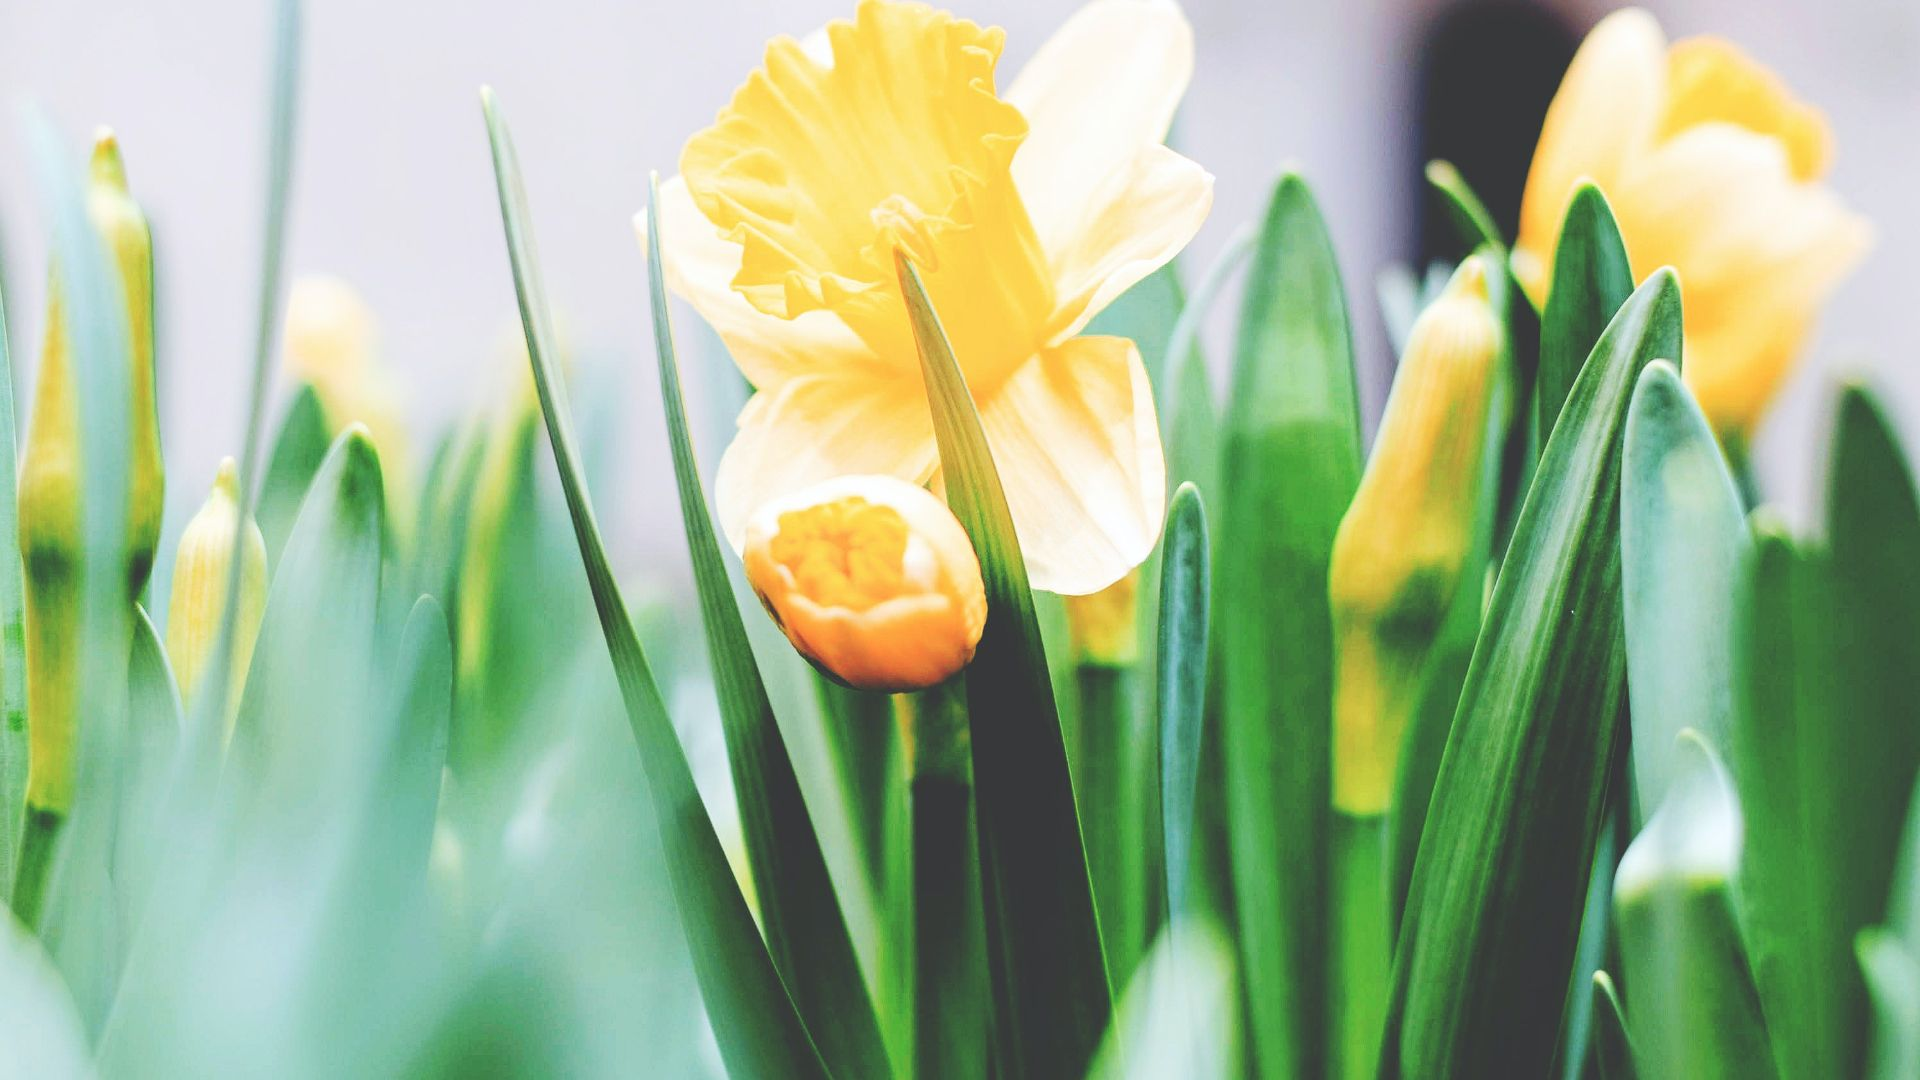 a picture of yellow tulips